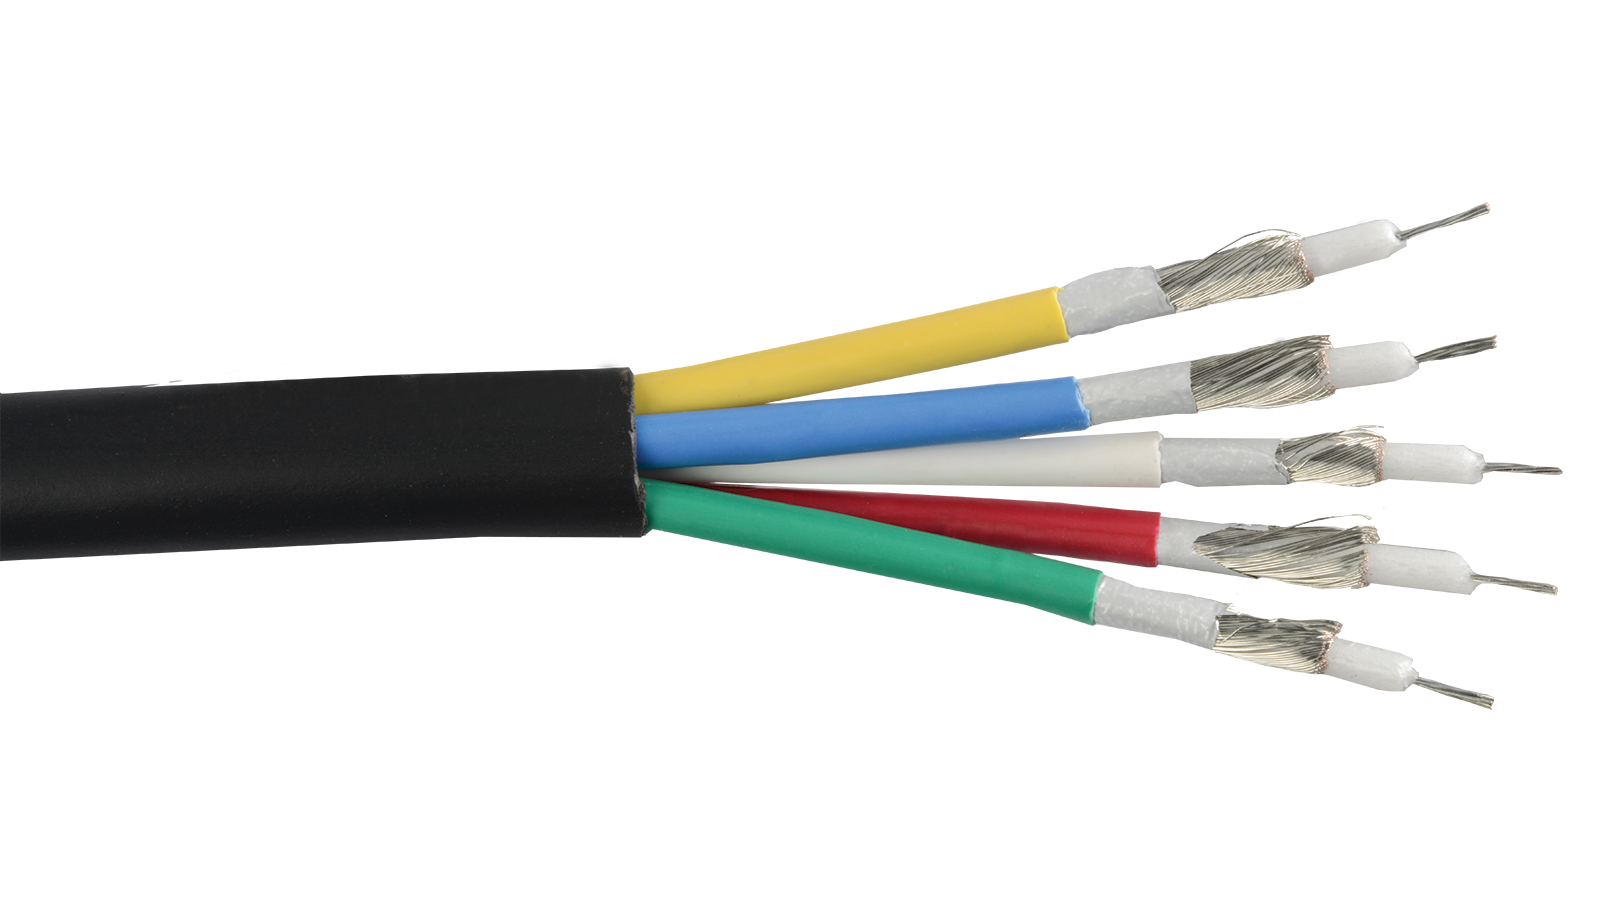 RGB5C-PLN - RGB 5 x 26 AWG Stranded Mini High Resolution Coaxial ...